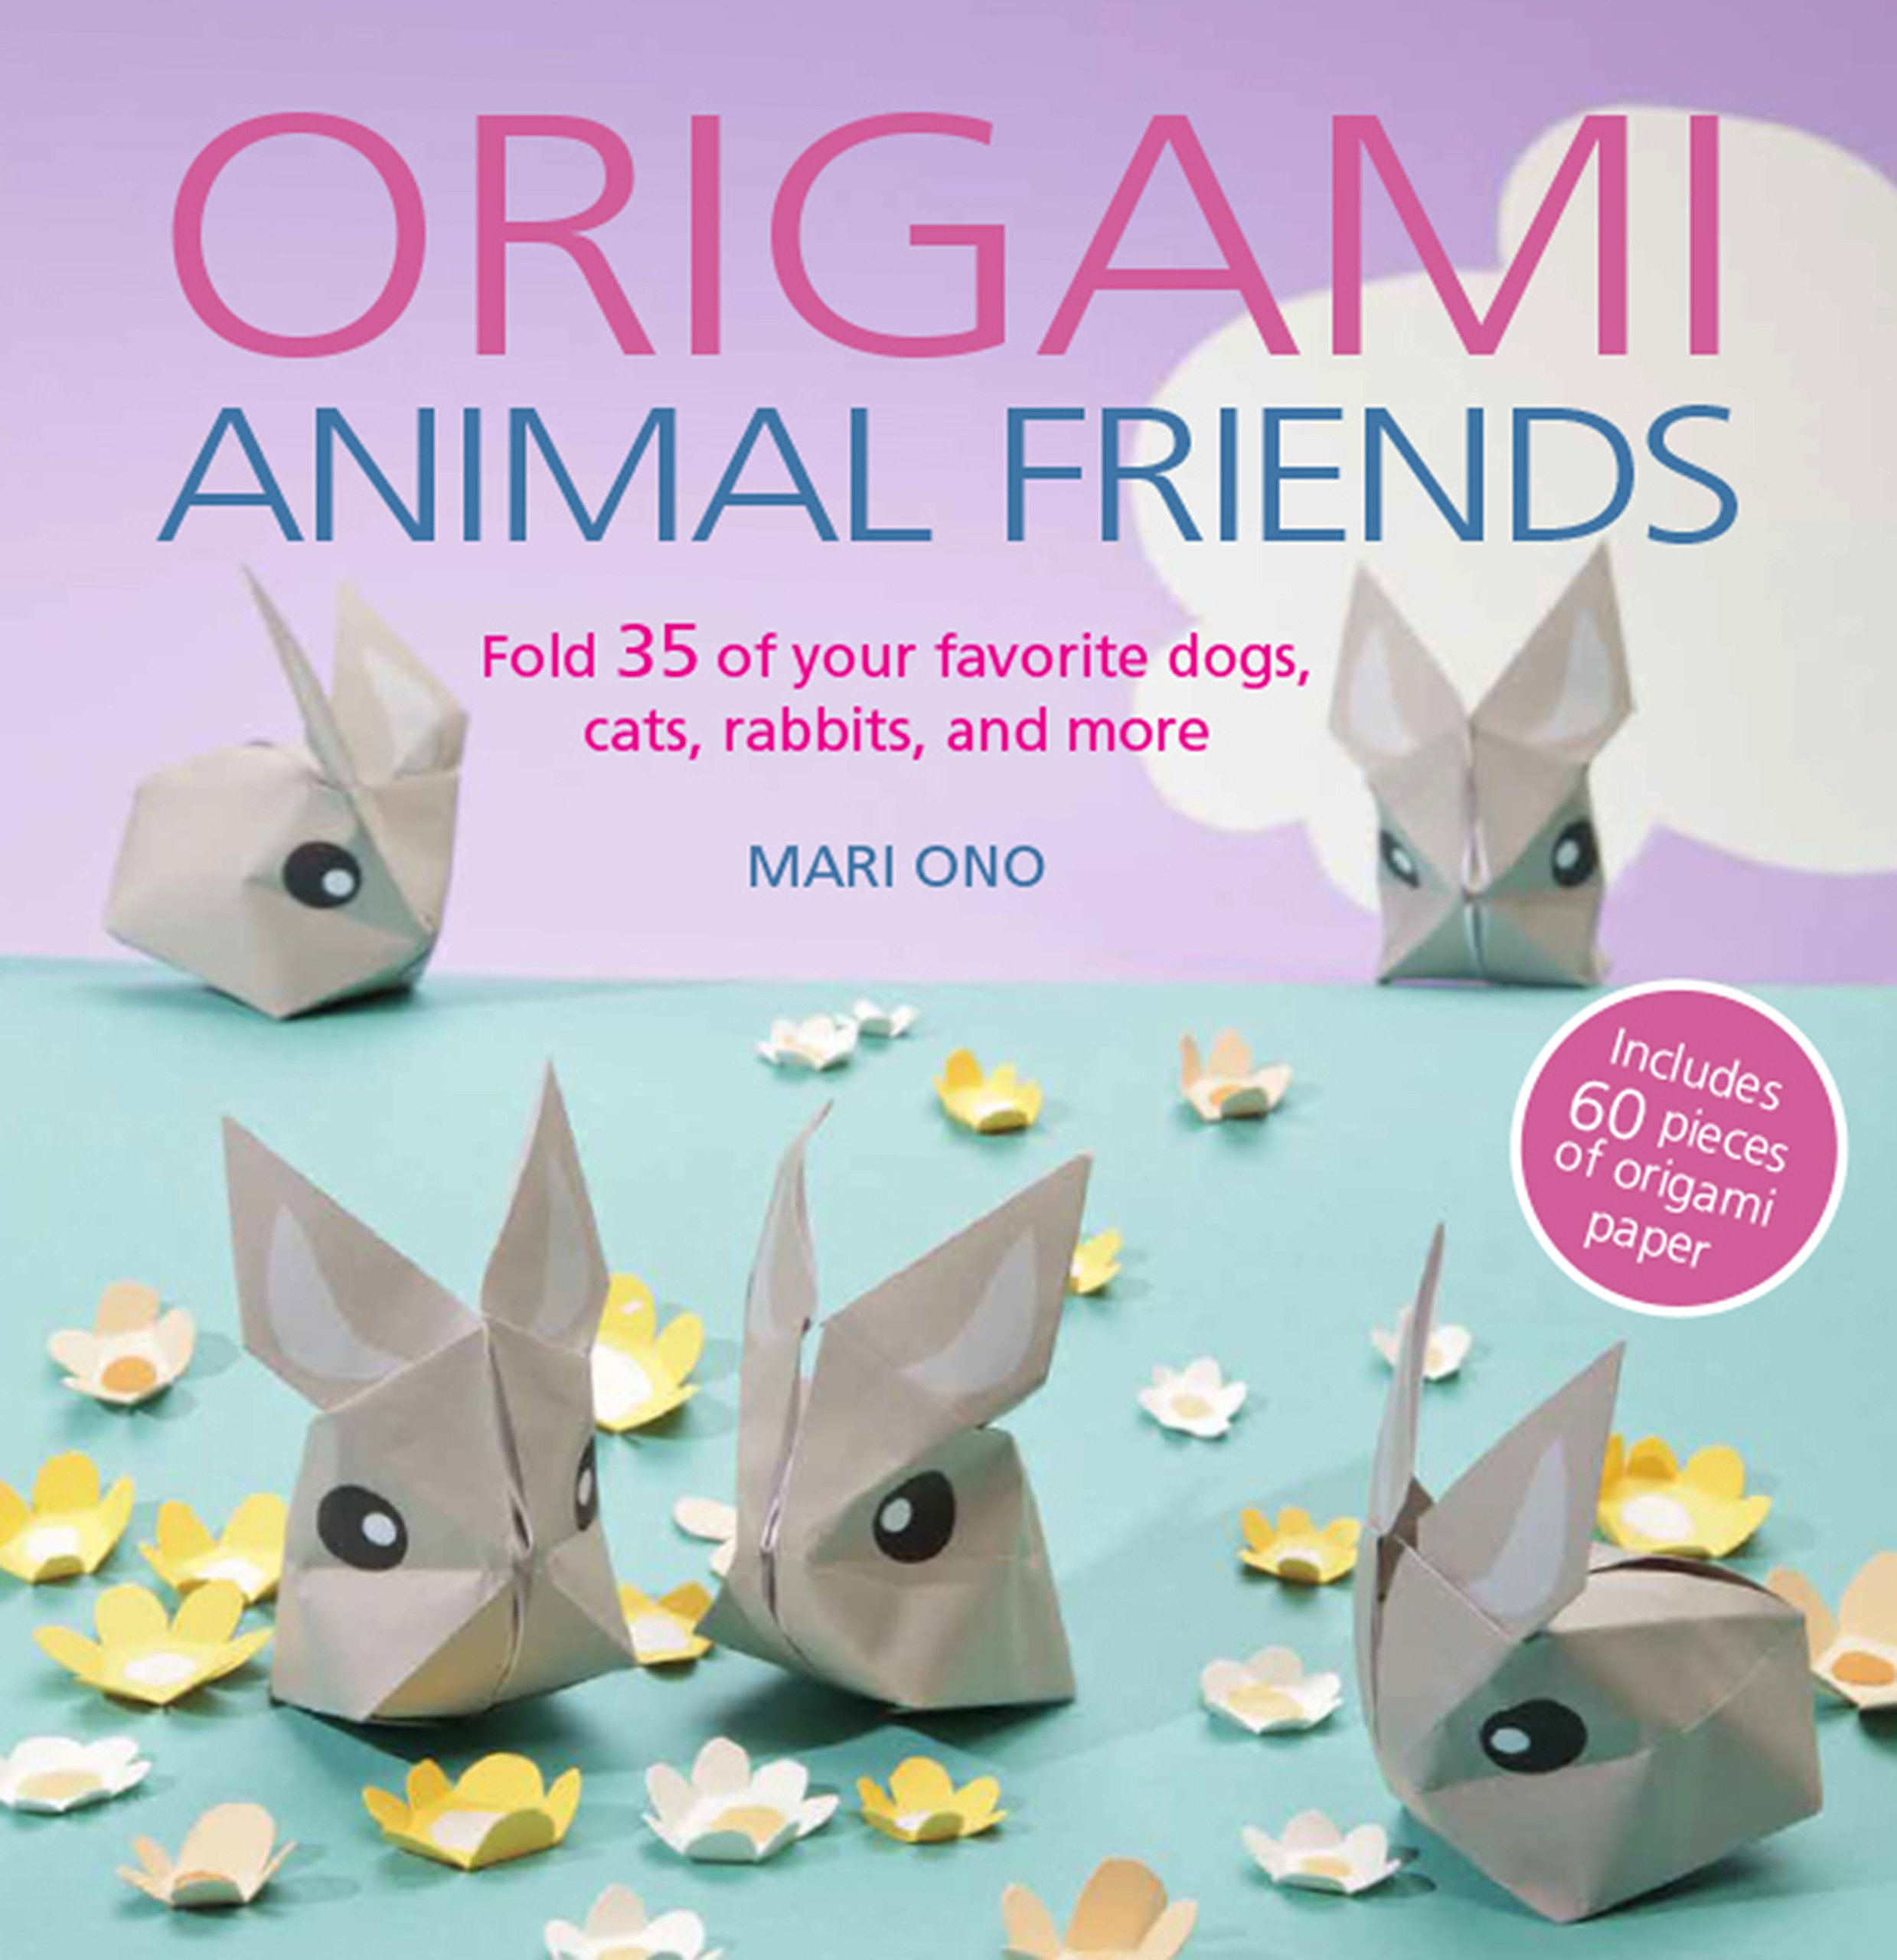 Childrens Origami Pet Book Including Instruction /& Sticker Sheets Craft Paper